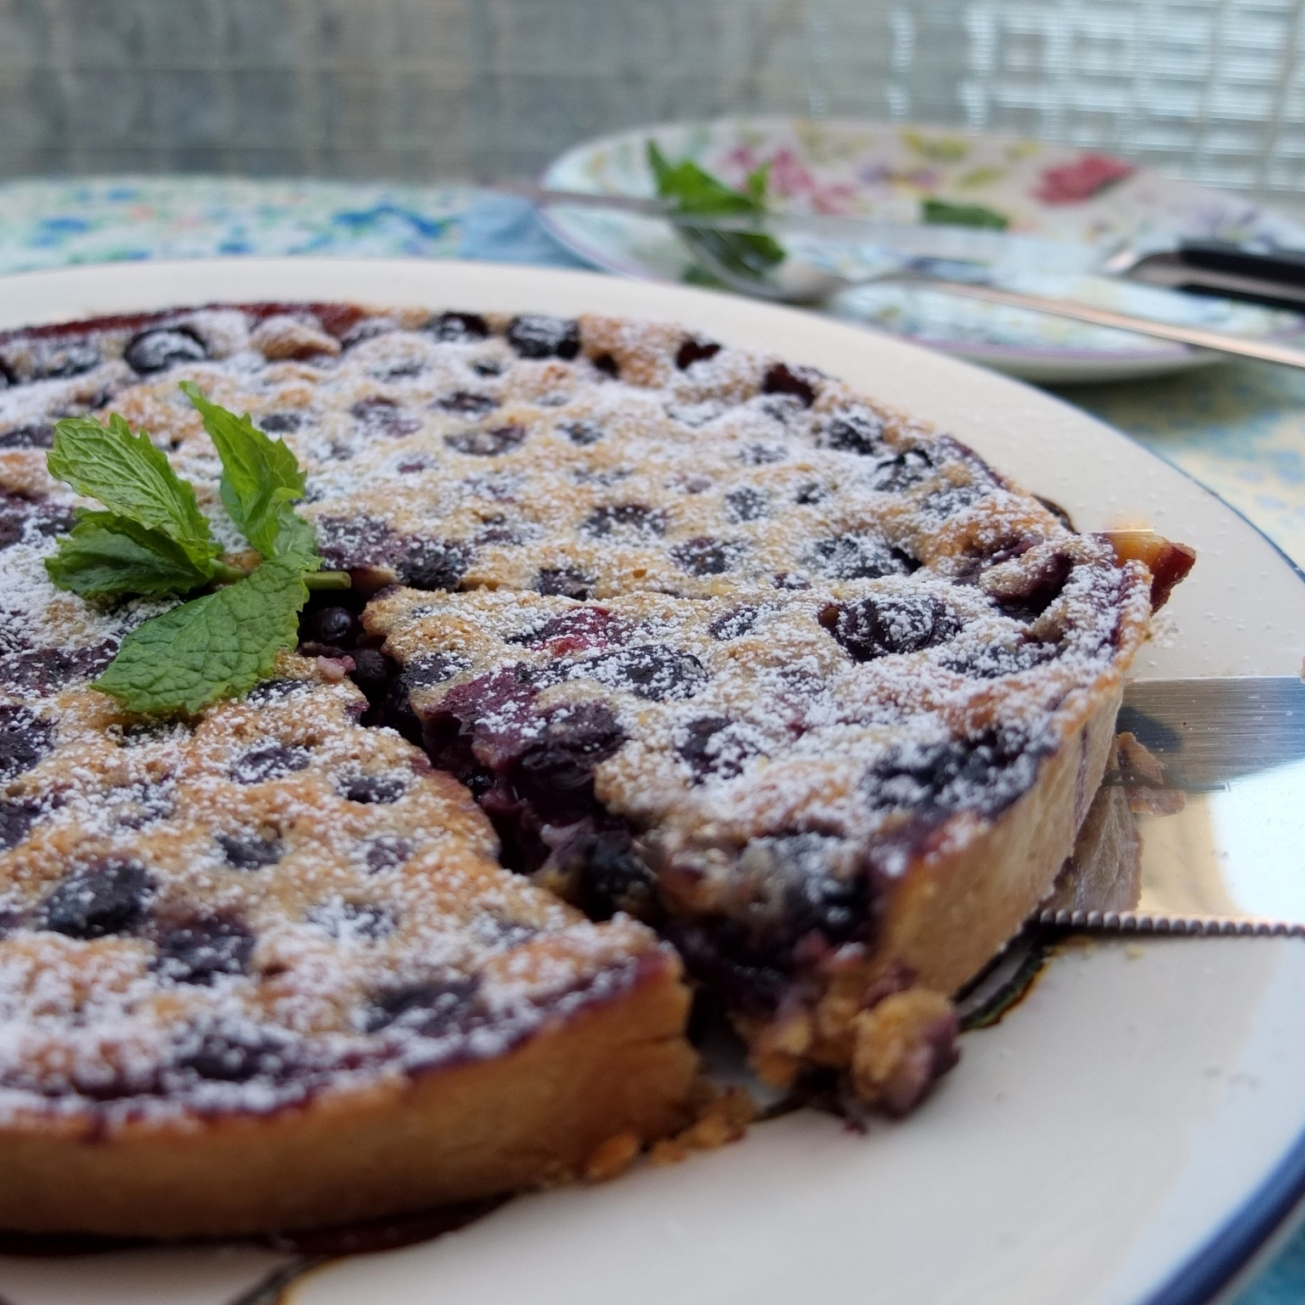 Blueberry and pine nut tart no.2